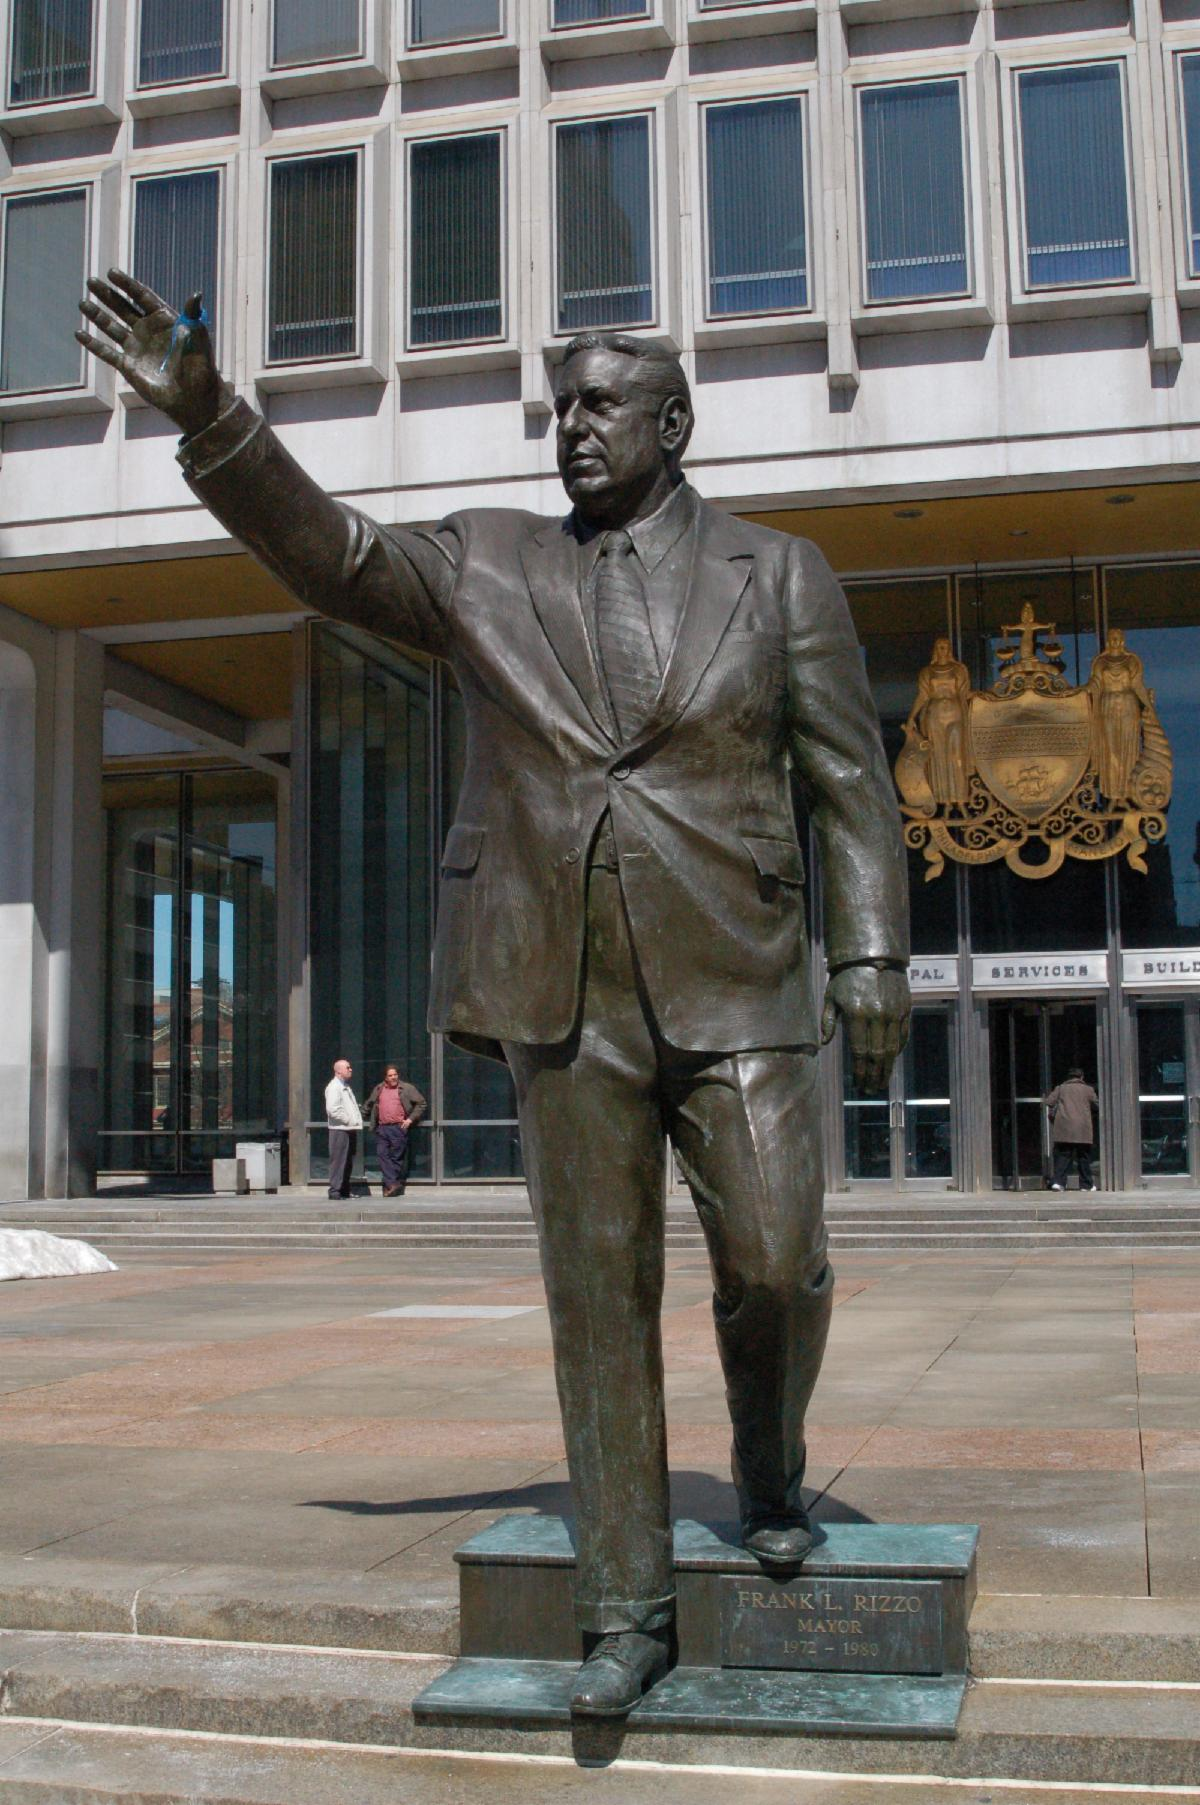 The statue of Frank Rizzo at the Municipal Services Building_ which was removed on June 3